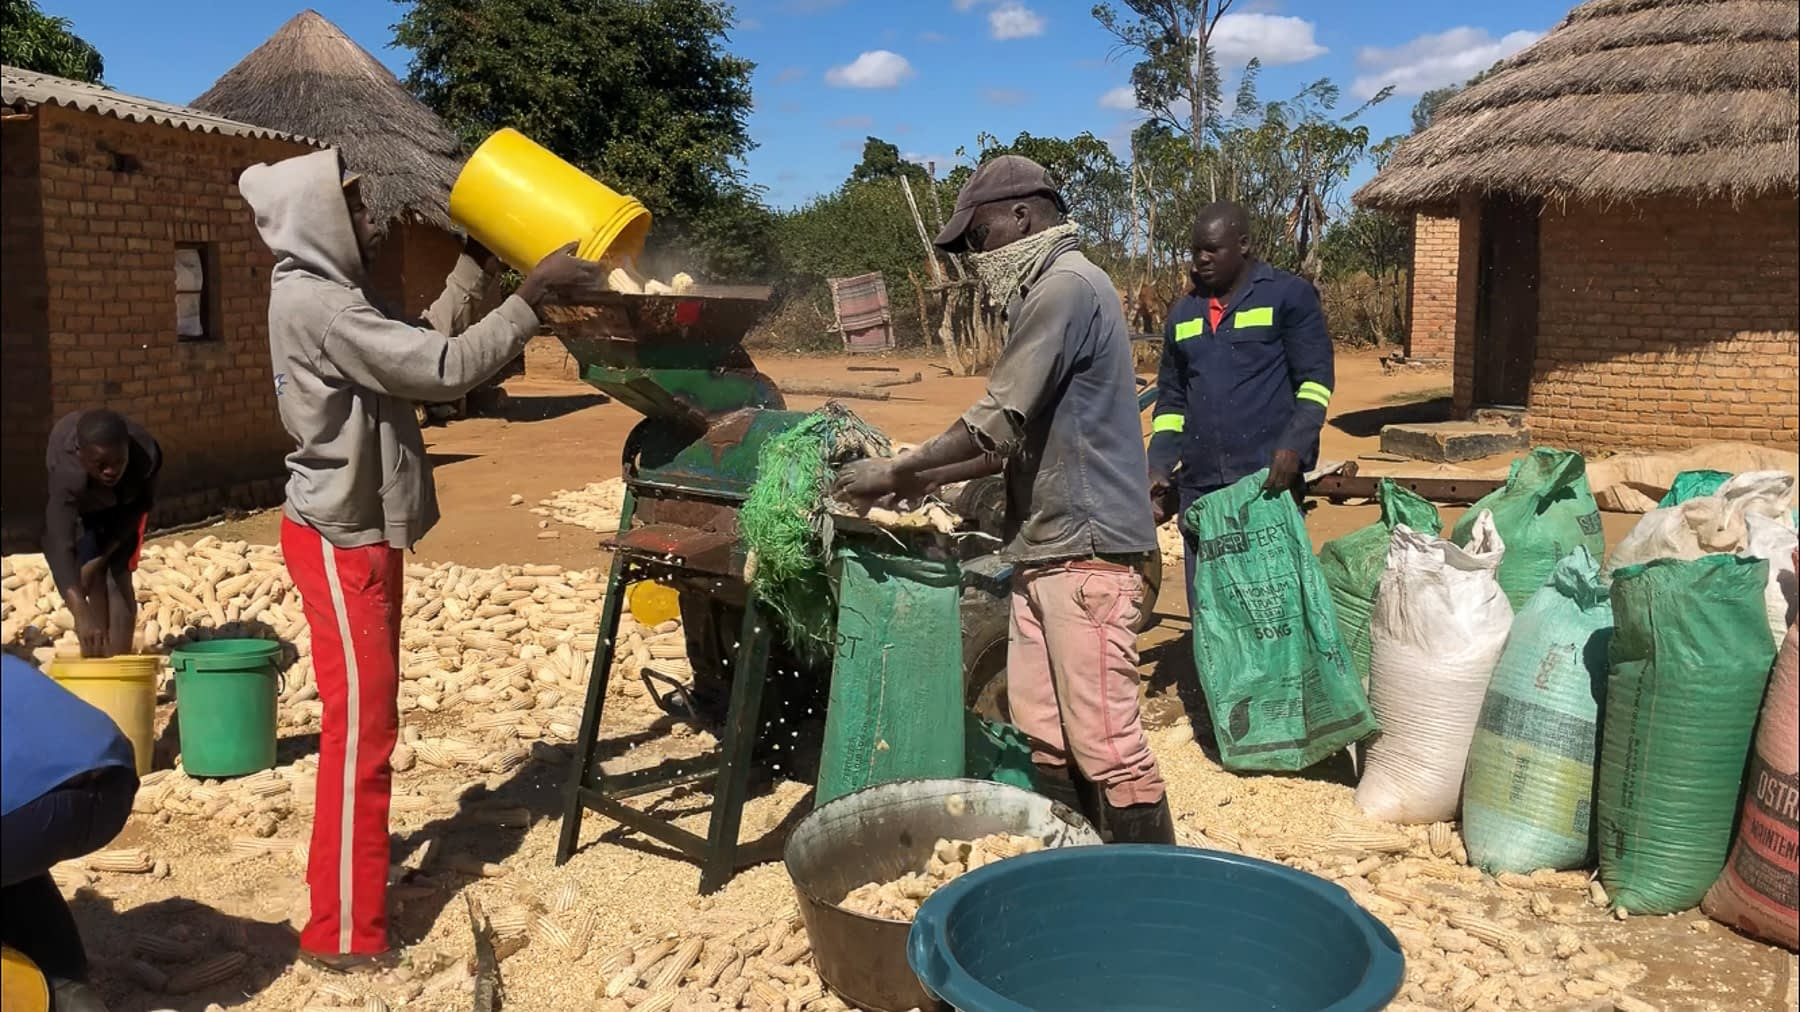 (From left to right) Shepard Kawiz, 24, gathers dried maize cobs into a bucket passing it to his brother Pinnot Karwizi, 26, who pours the maize into the sheller machine by feeding the hopper. The maize falls into the sheller's barrel where high-speed rotation separates the grain from the cob. As the bare shafts are propelled out one side, Masimba Mawire, 30, is there to catch and dispose of them. Meanwhile, Gift Chawara, 28, is making sure a bag is securely hooked to the machine to collect the maize grain. (Photo: Matthew O'Leary/CIMMYT)